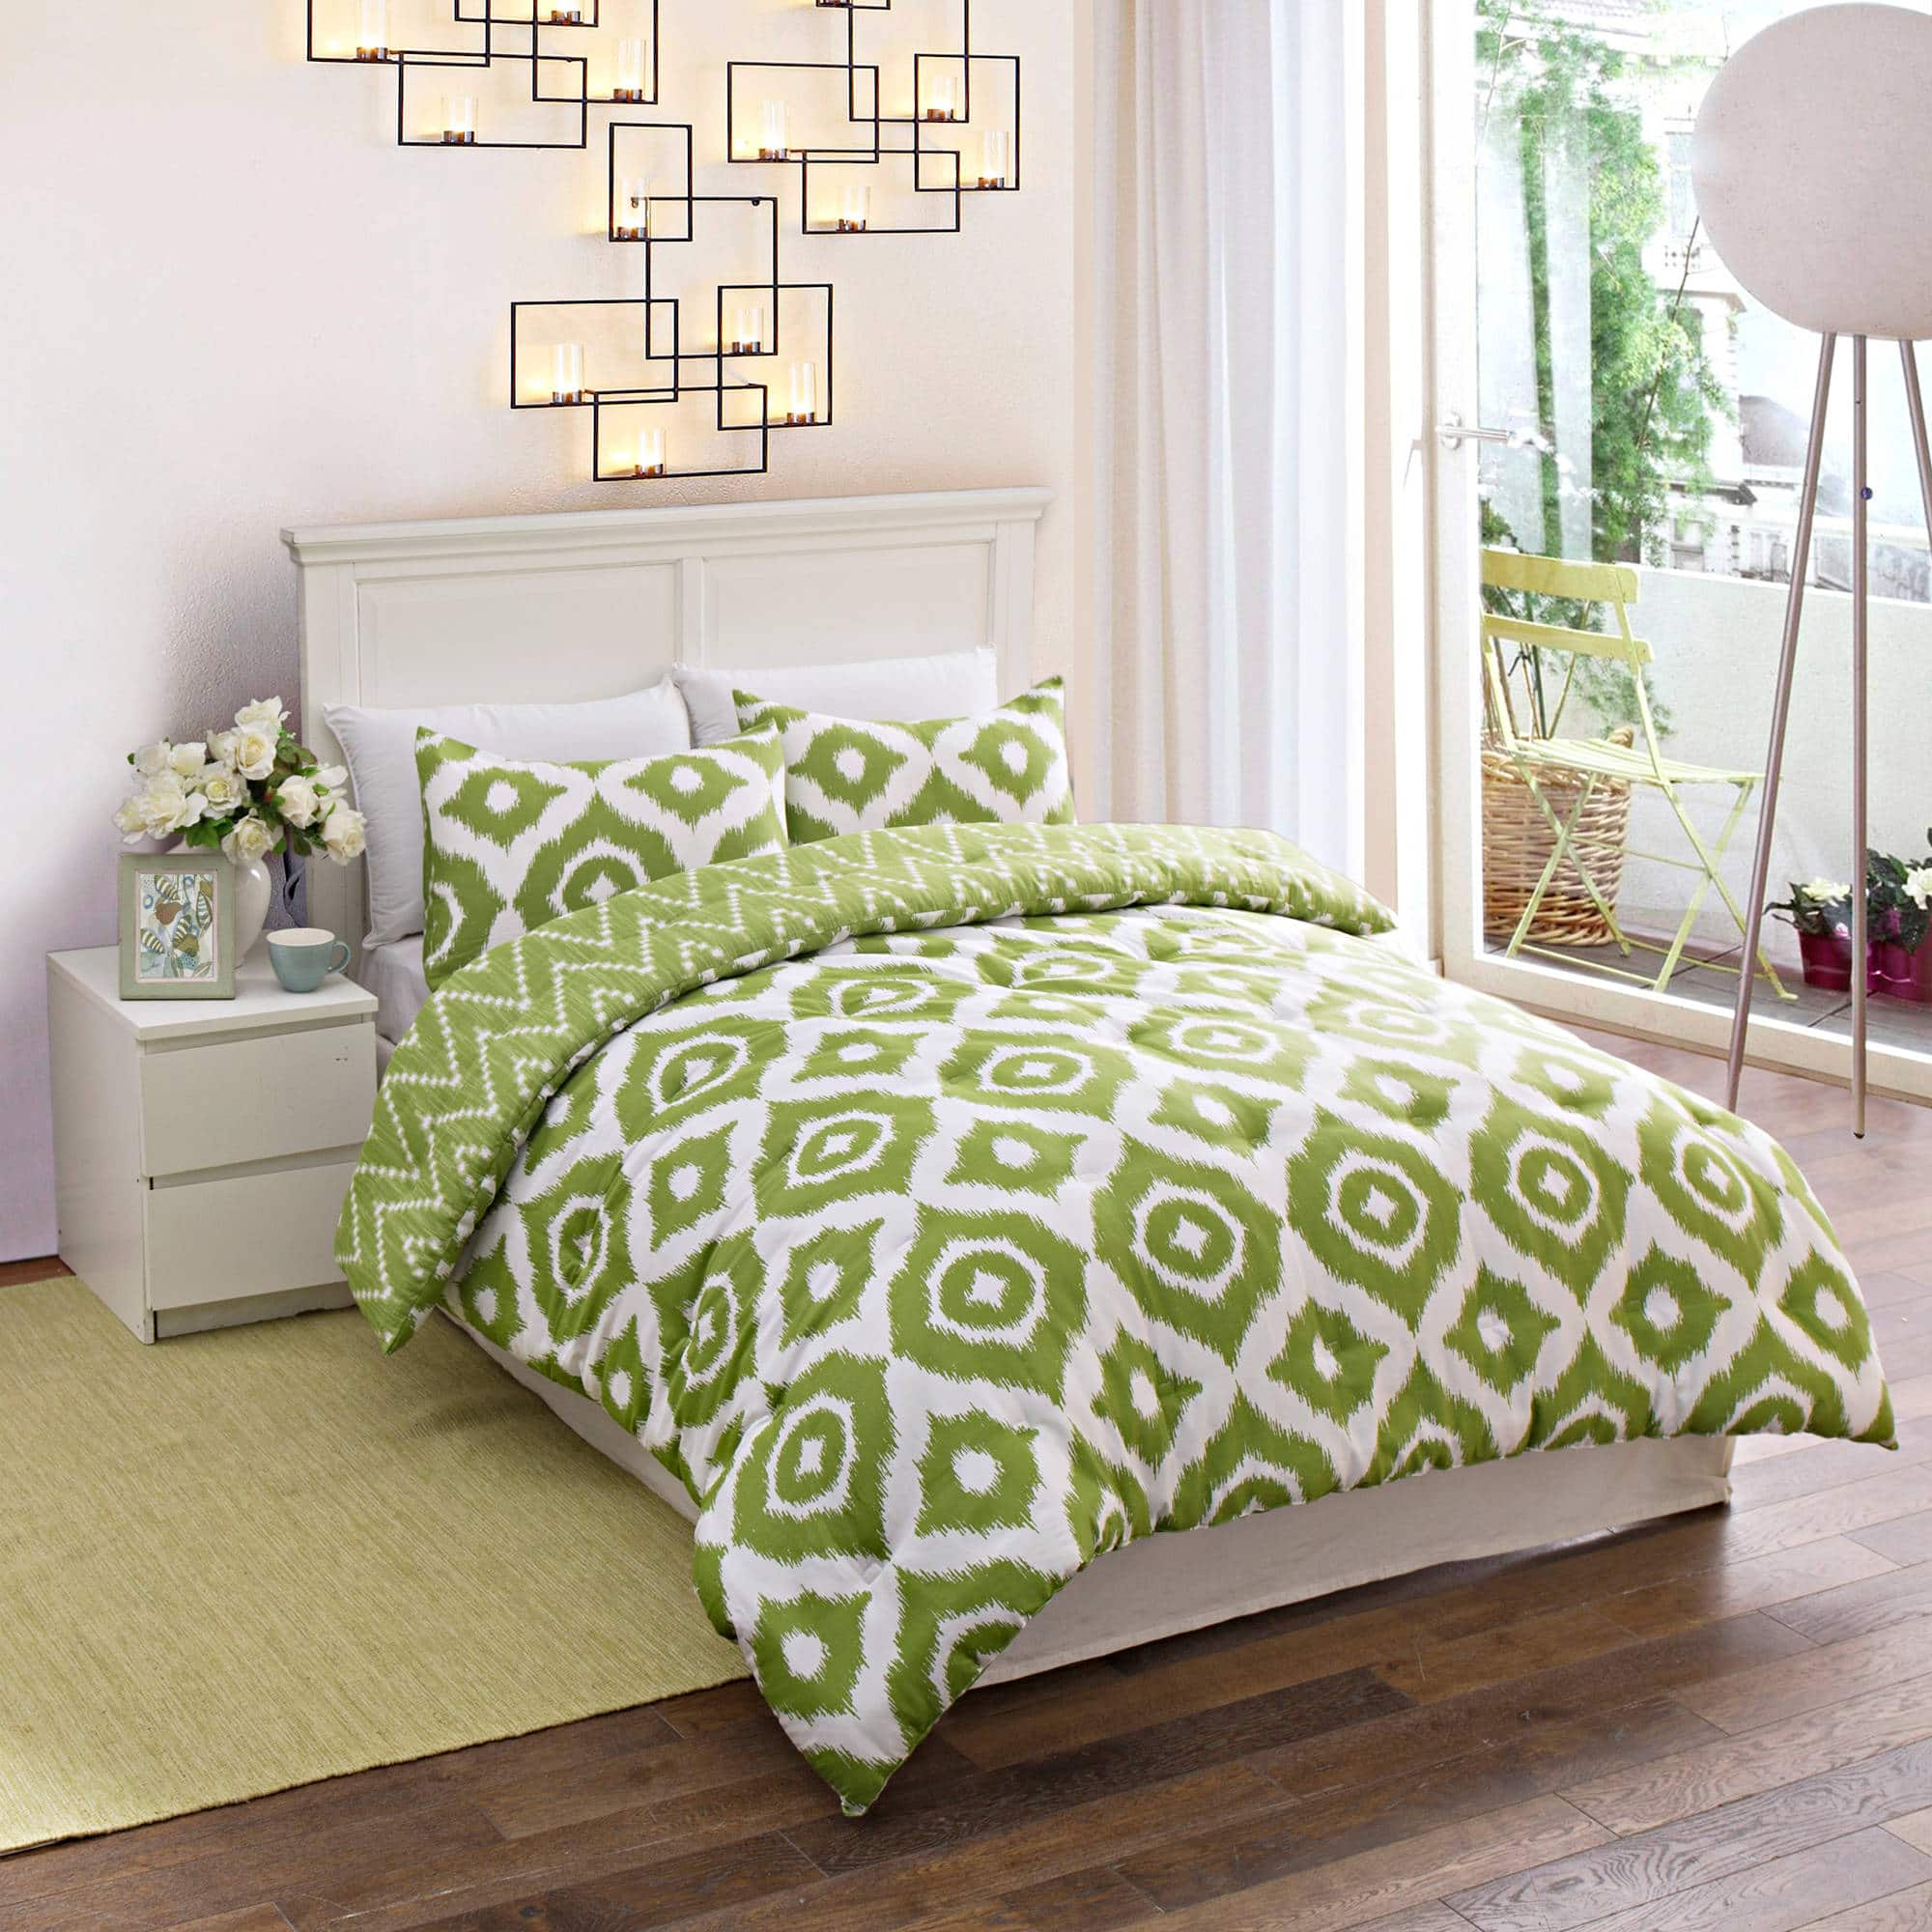 3-Piece Geo Medallion Bedding Comforter Set (Full)  $17 + Free Shipping